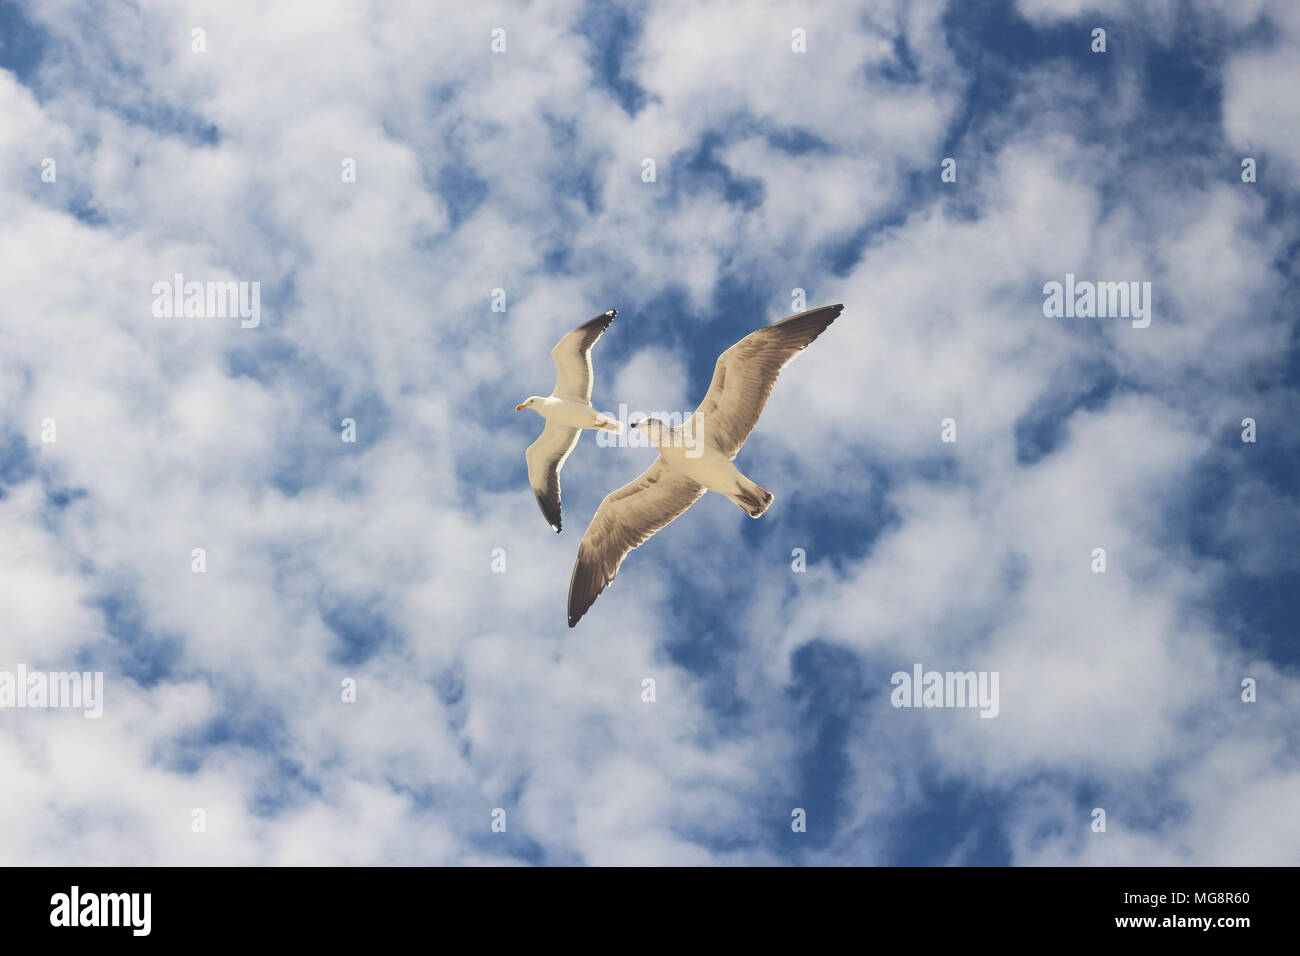 The synchronized flight of two seagulls. They decorate a blue sky that has small white clouds, harmony, lightness, beauty and freedom - Stock Image